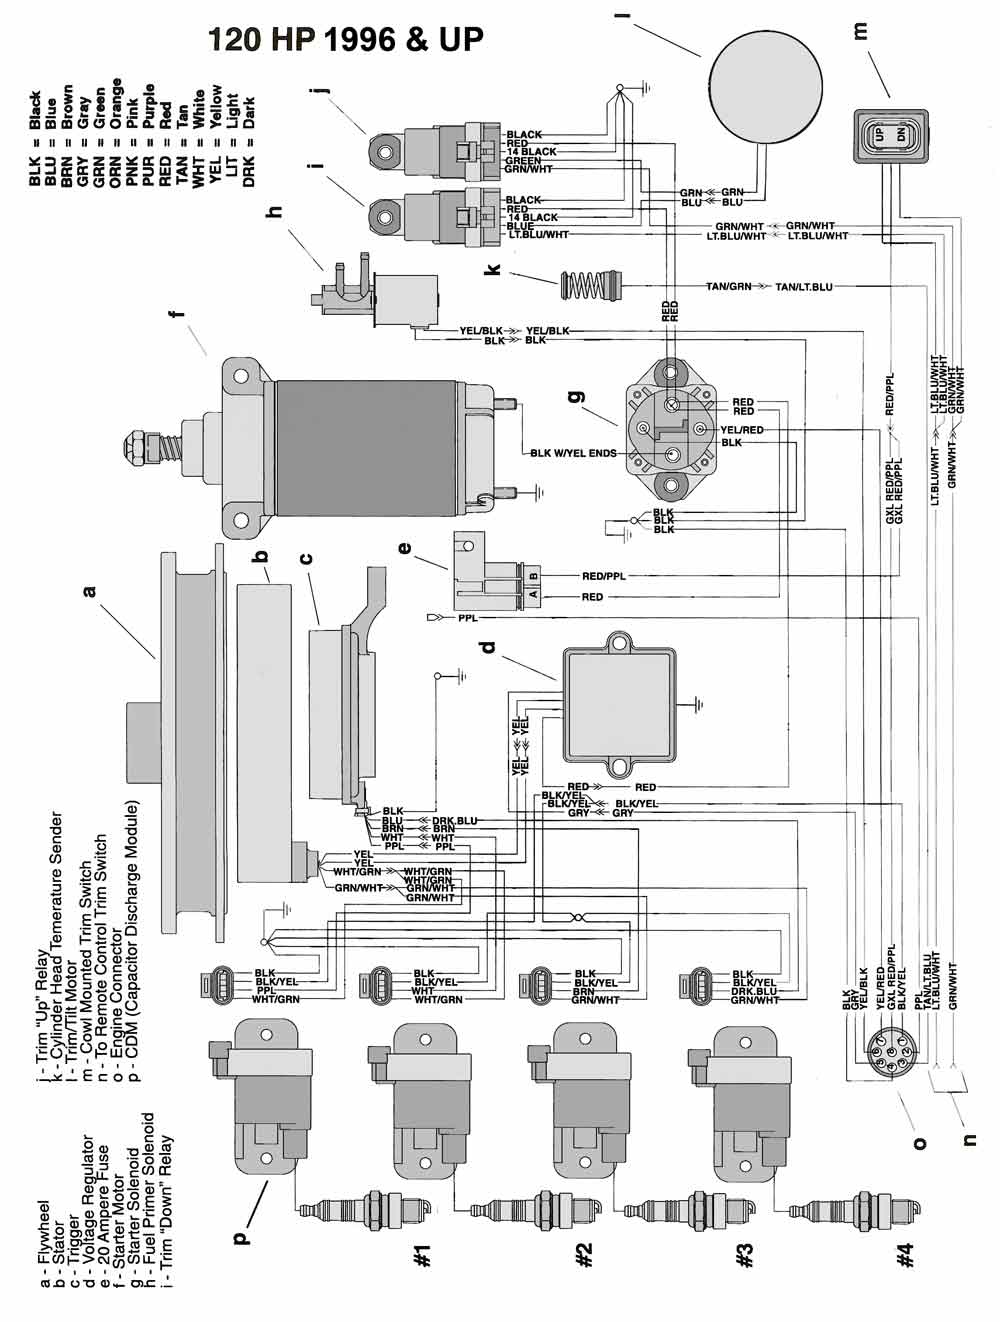 medium resolution of 70 hp johnson outboard wiring diagram mastertech marine evinrude 1959 40 hp johnson outboard diagrams moreover nissan wiring diagrams